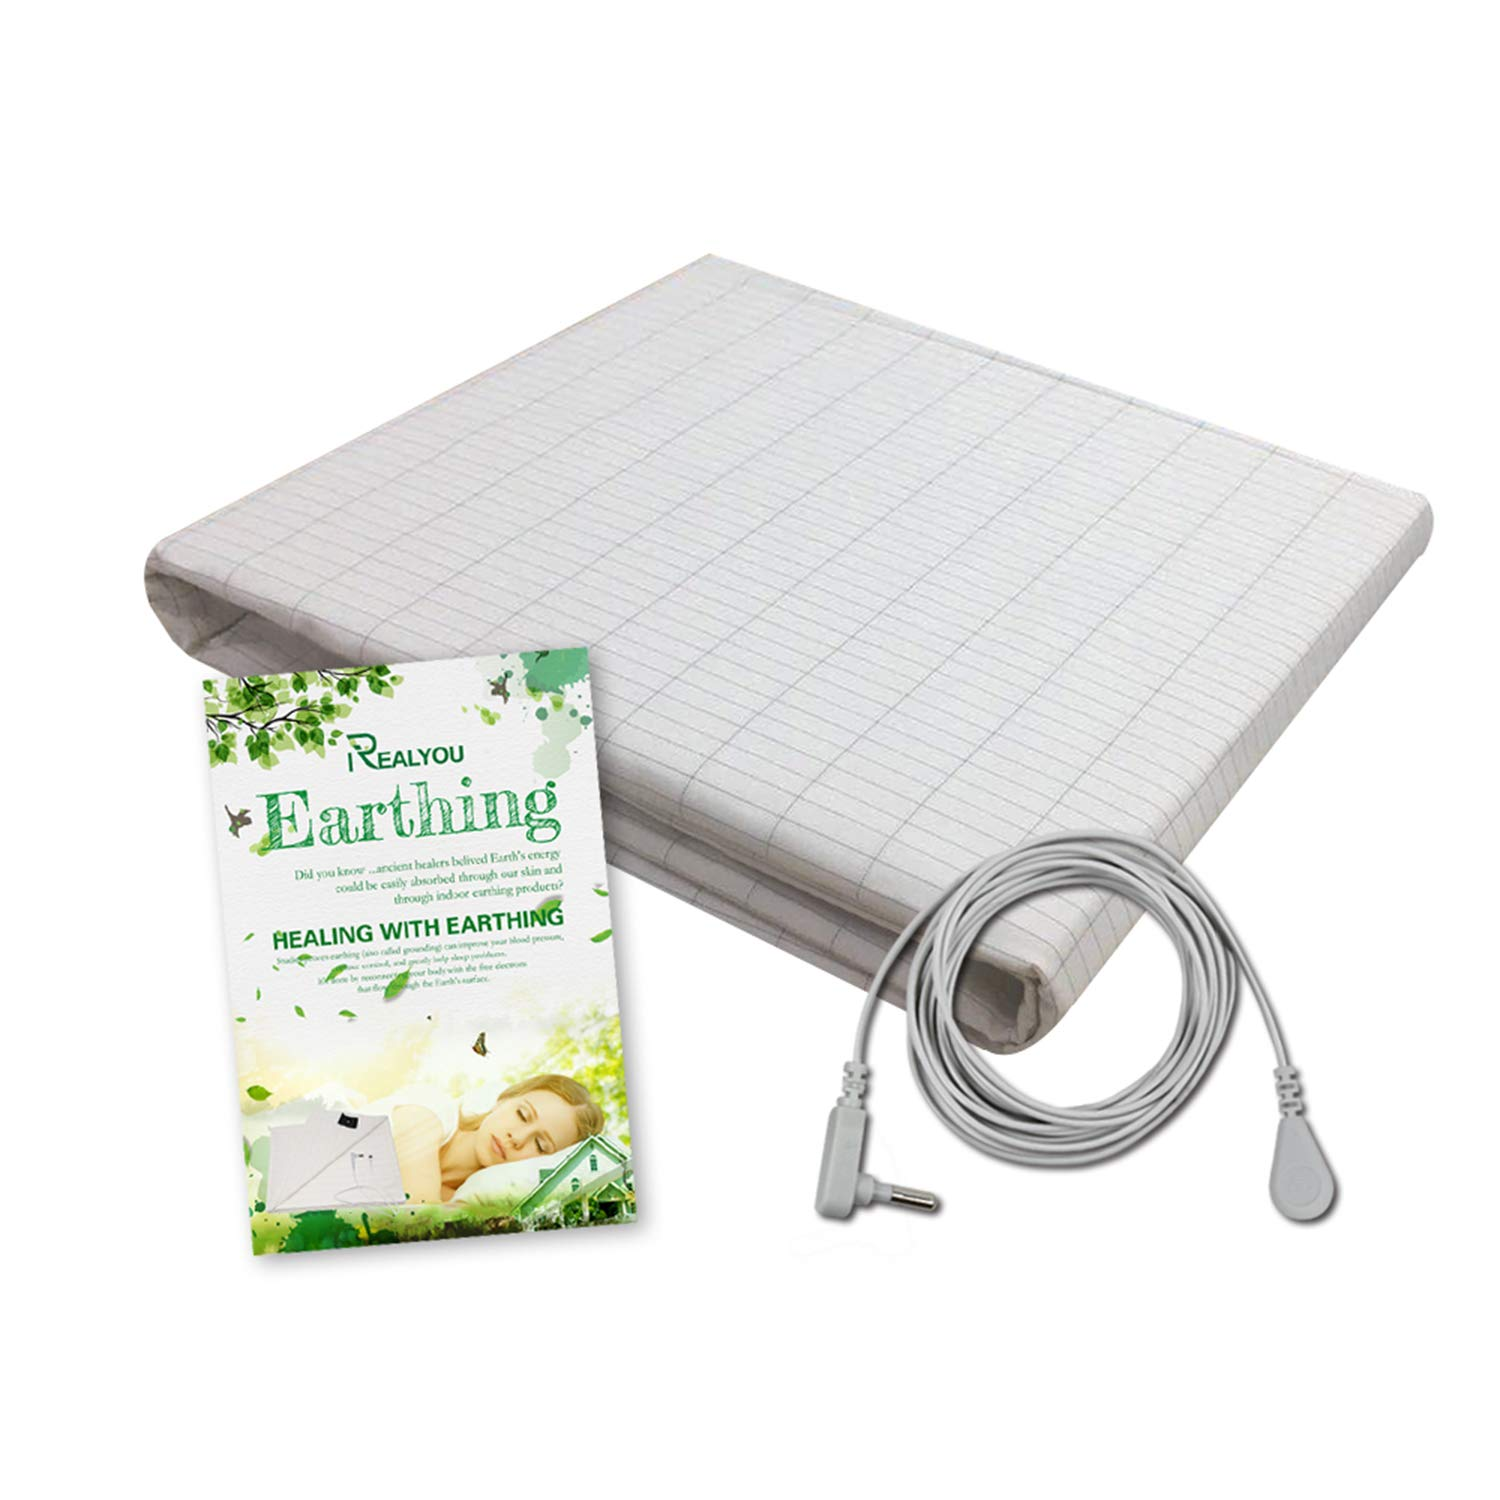 TALC Earthing Half Sheet, Earthing Grounding Sheet for EMF Protection, Improve Your Sleep, Less Pain and Inflammation/Antimicrobial Conductive Silver Fiber Mat (Sheet 25x52 inch) by TALC